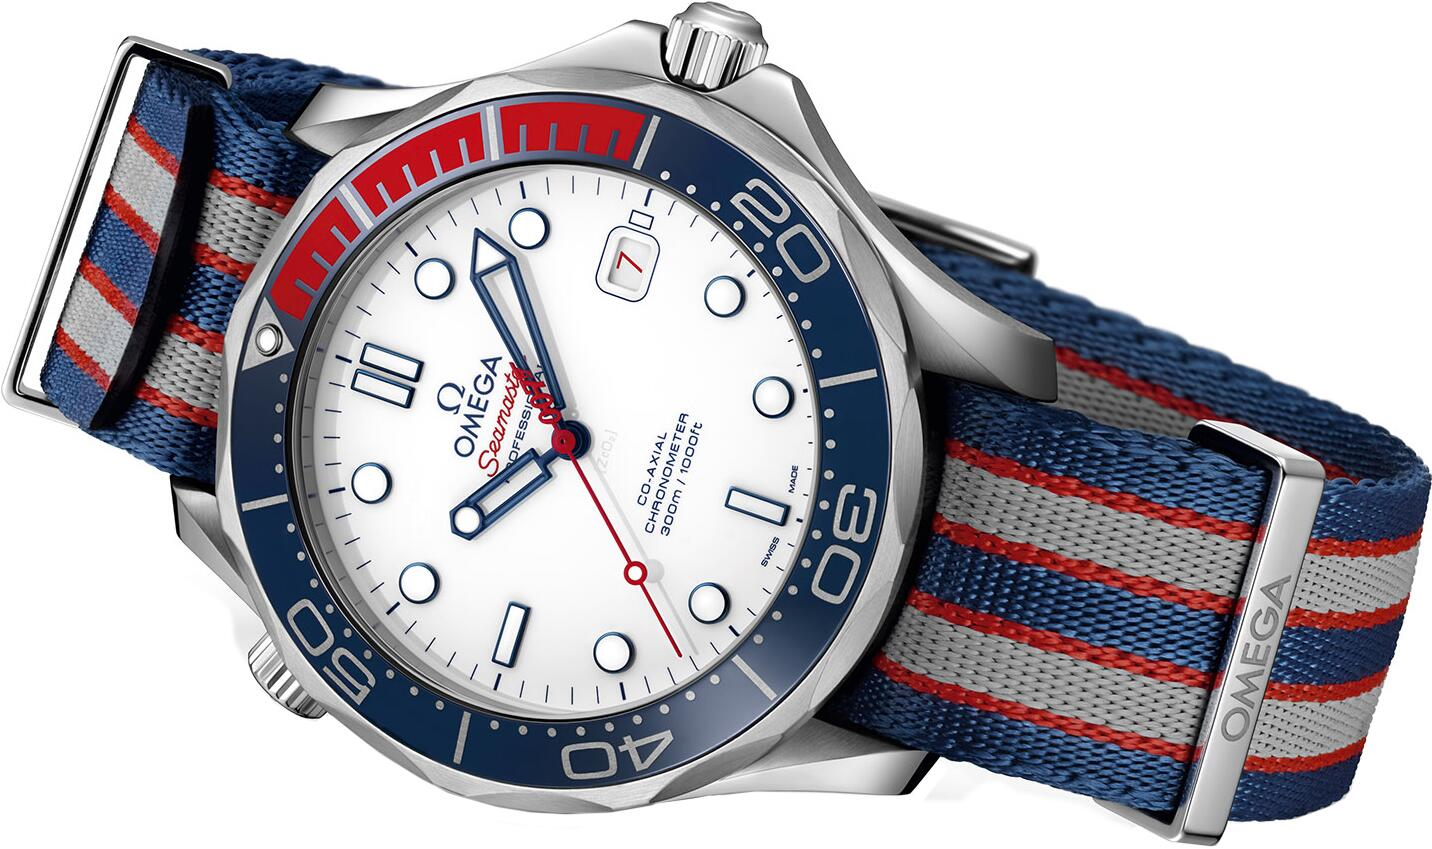 Swiss fake watches are appropriate for males with 41mm cases.